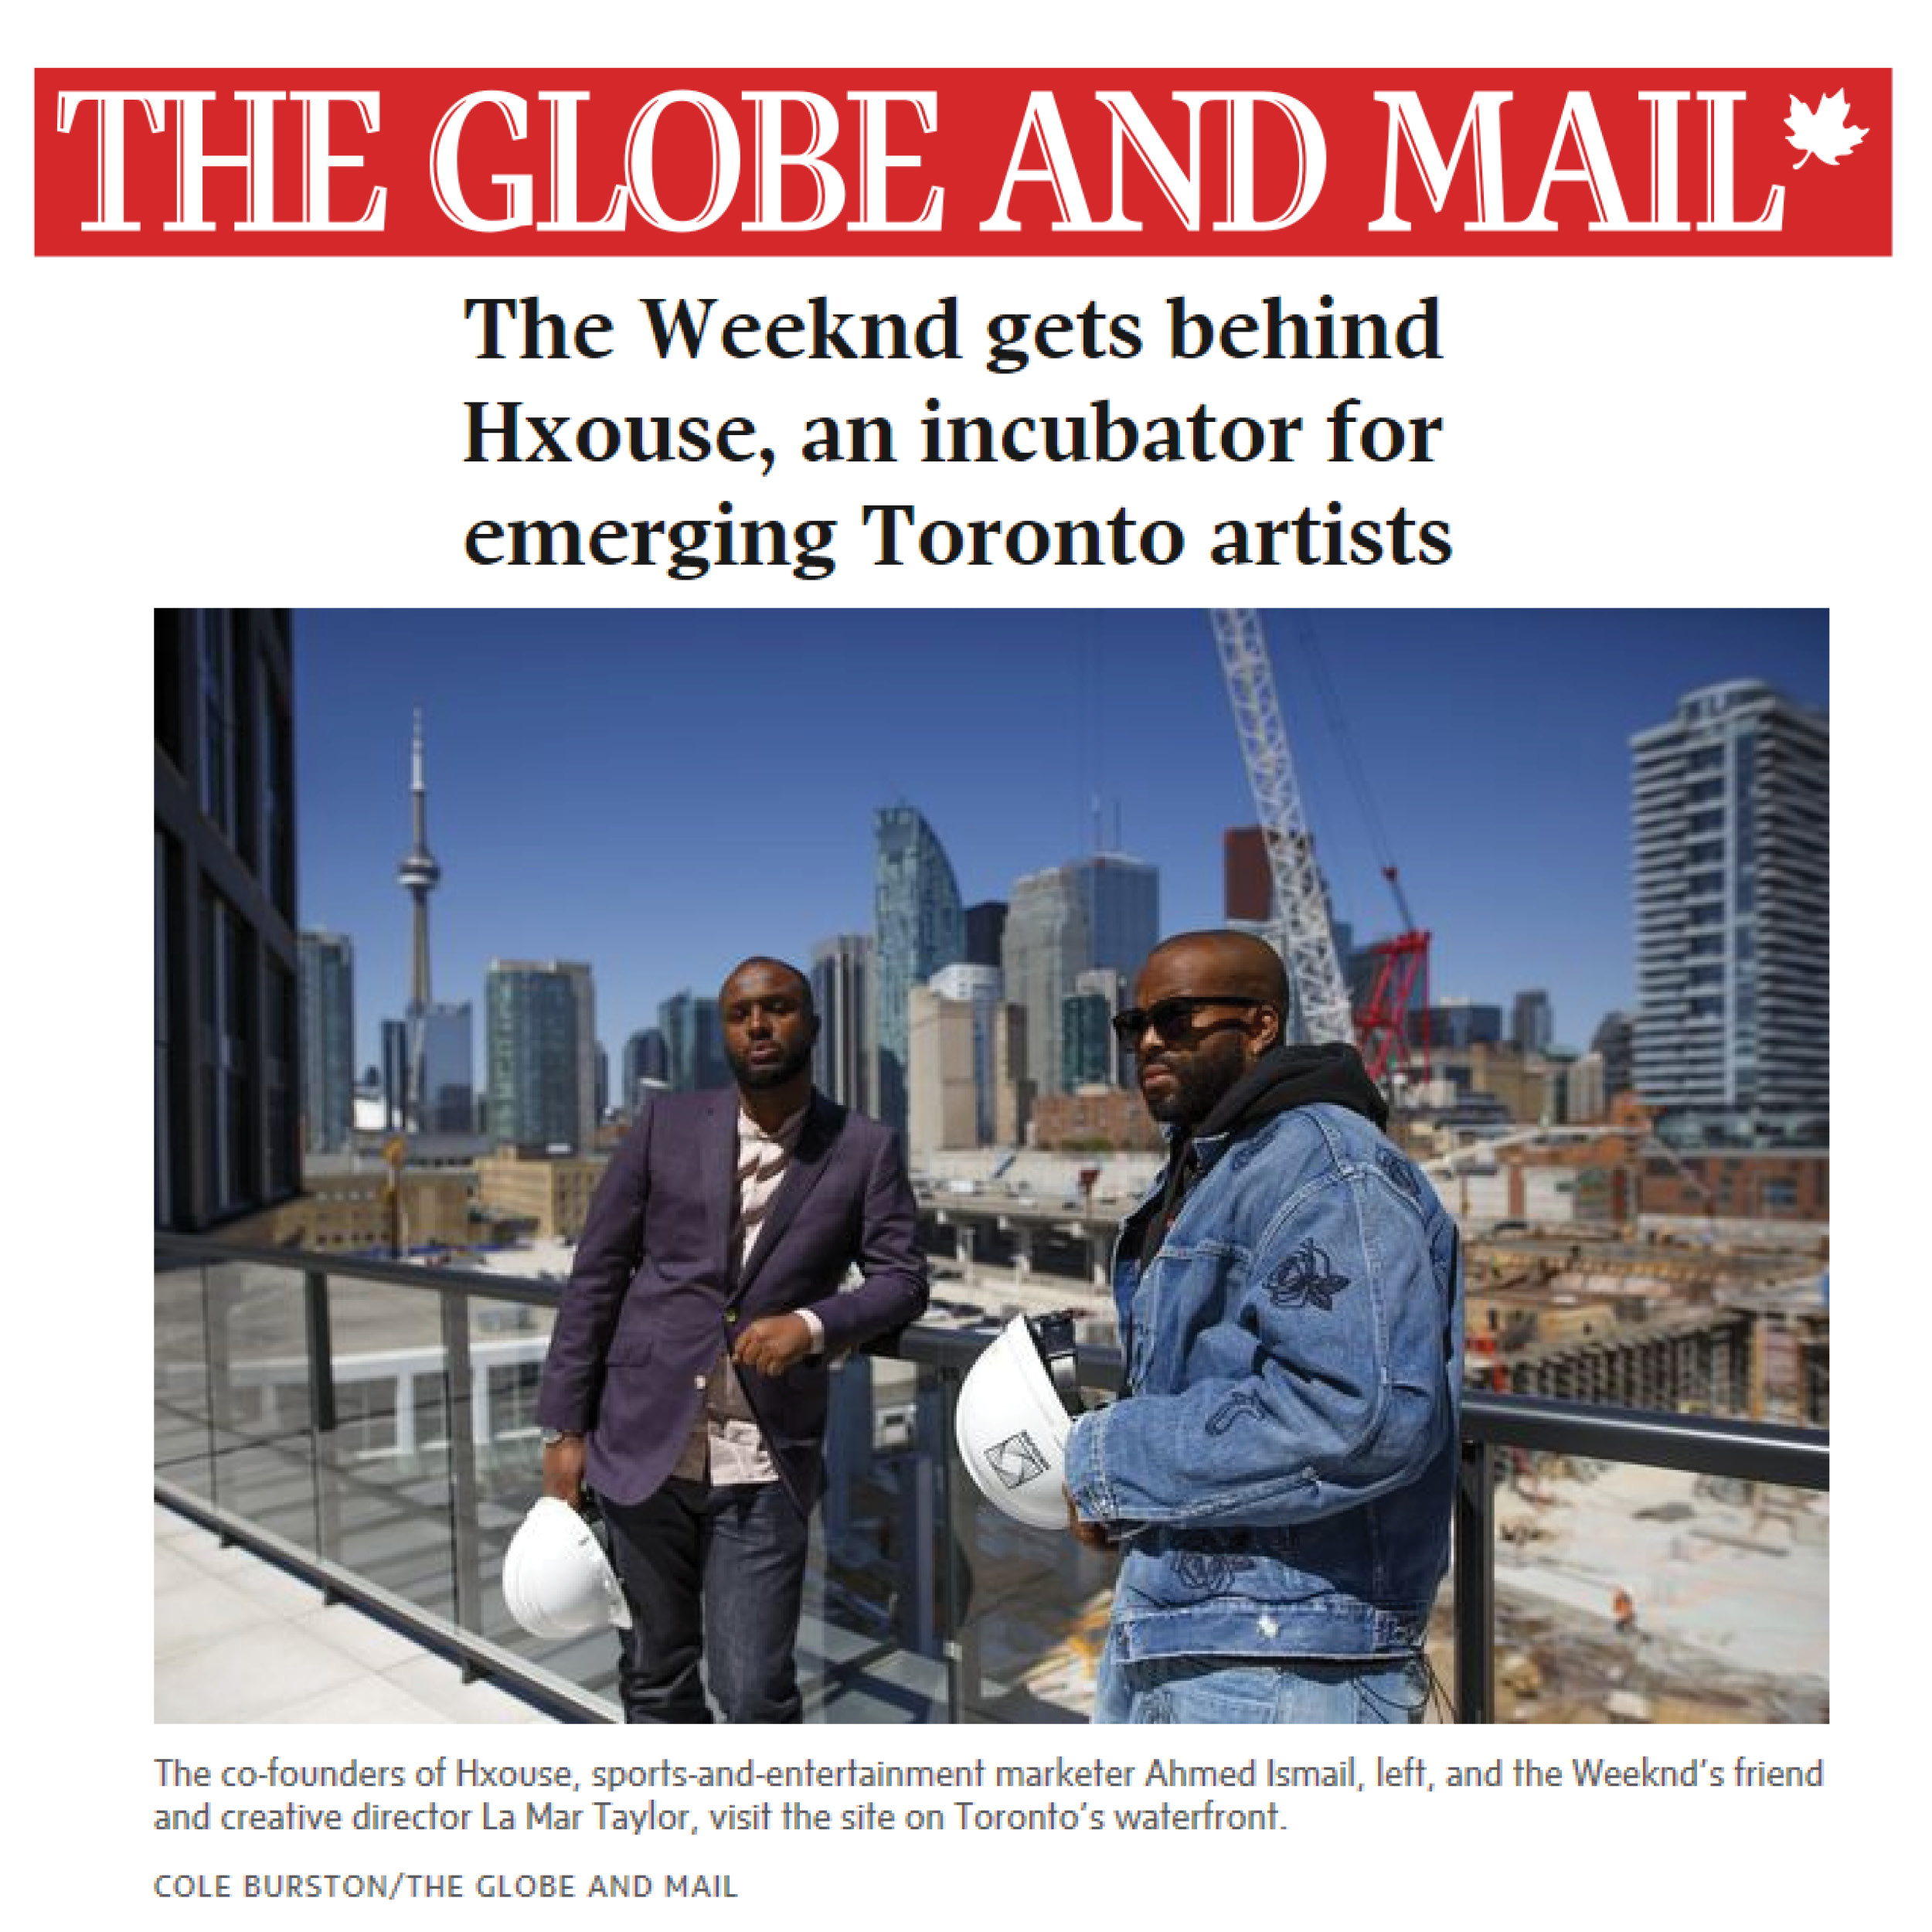 thumbnail with photo of two men on a construction site and the Globe and Mail banner